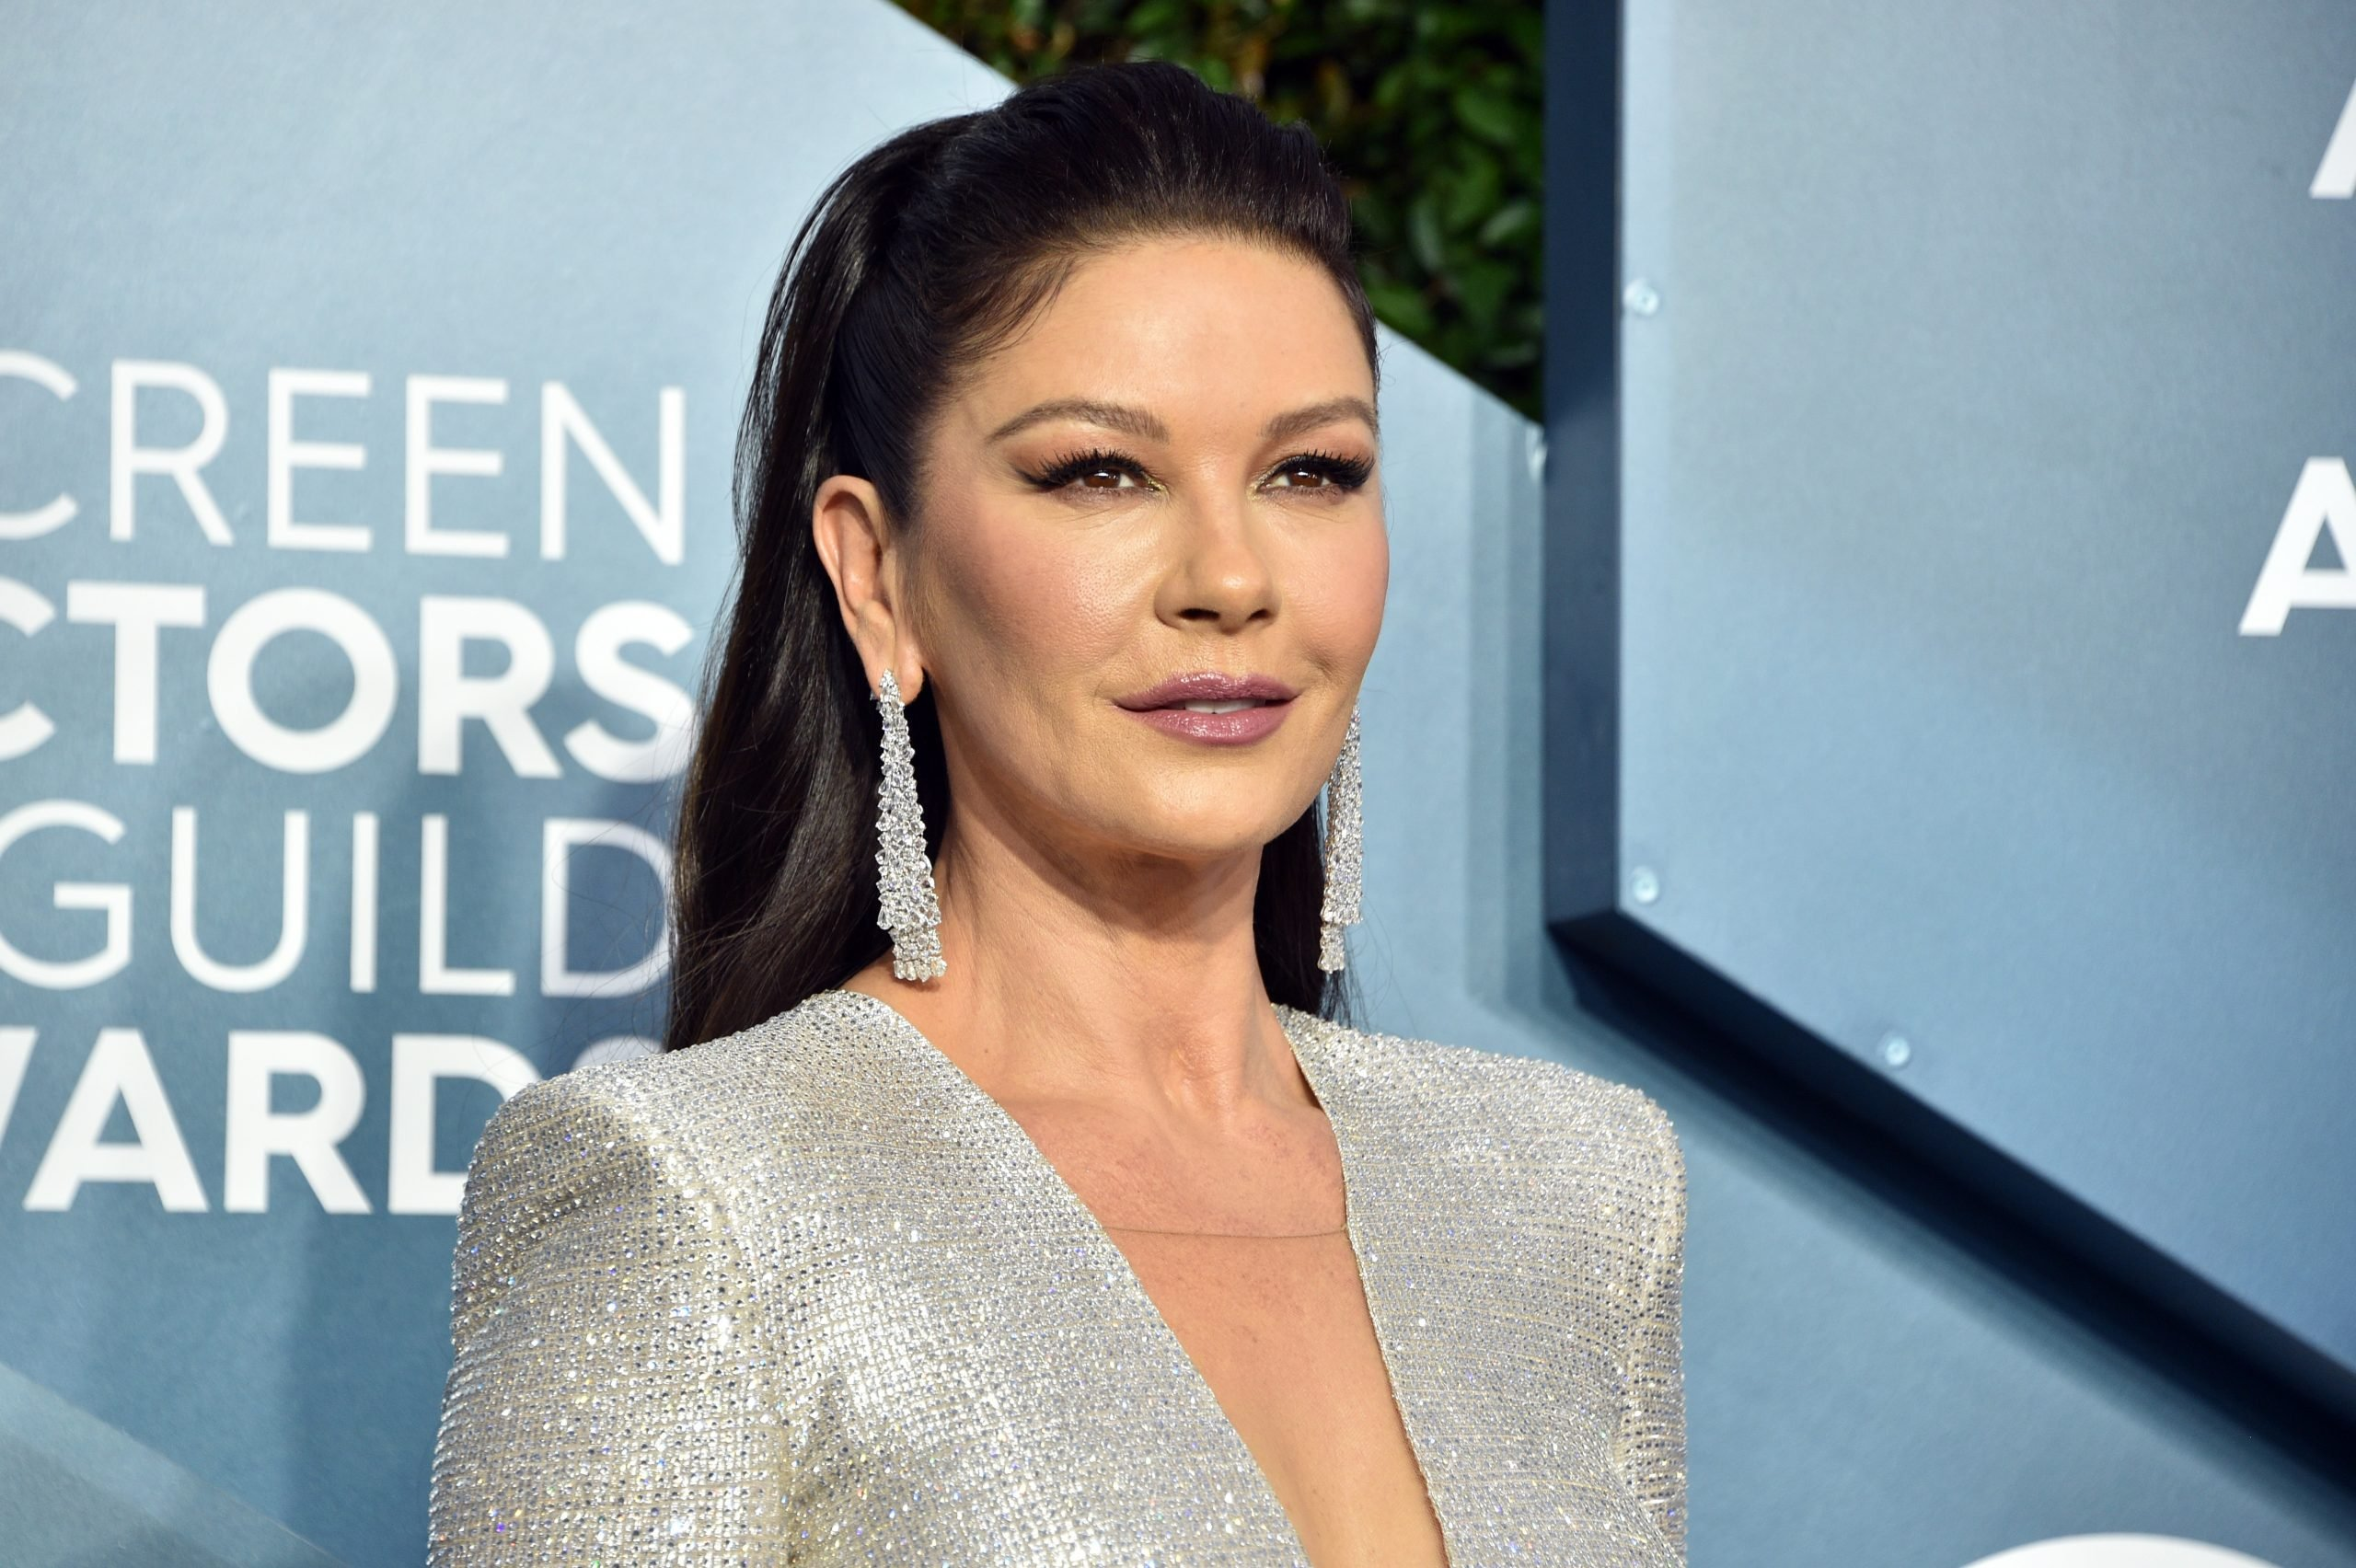 gettyimages 1200636097 scaled Catherine Zeta-Jones Cast As The Addams Family's Morticia